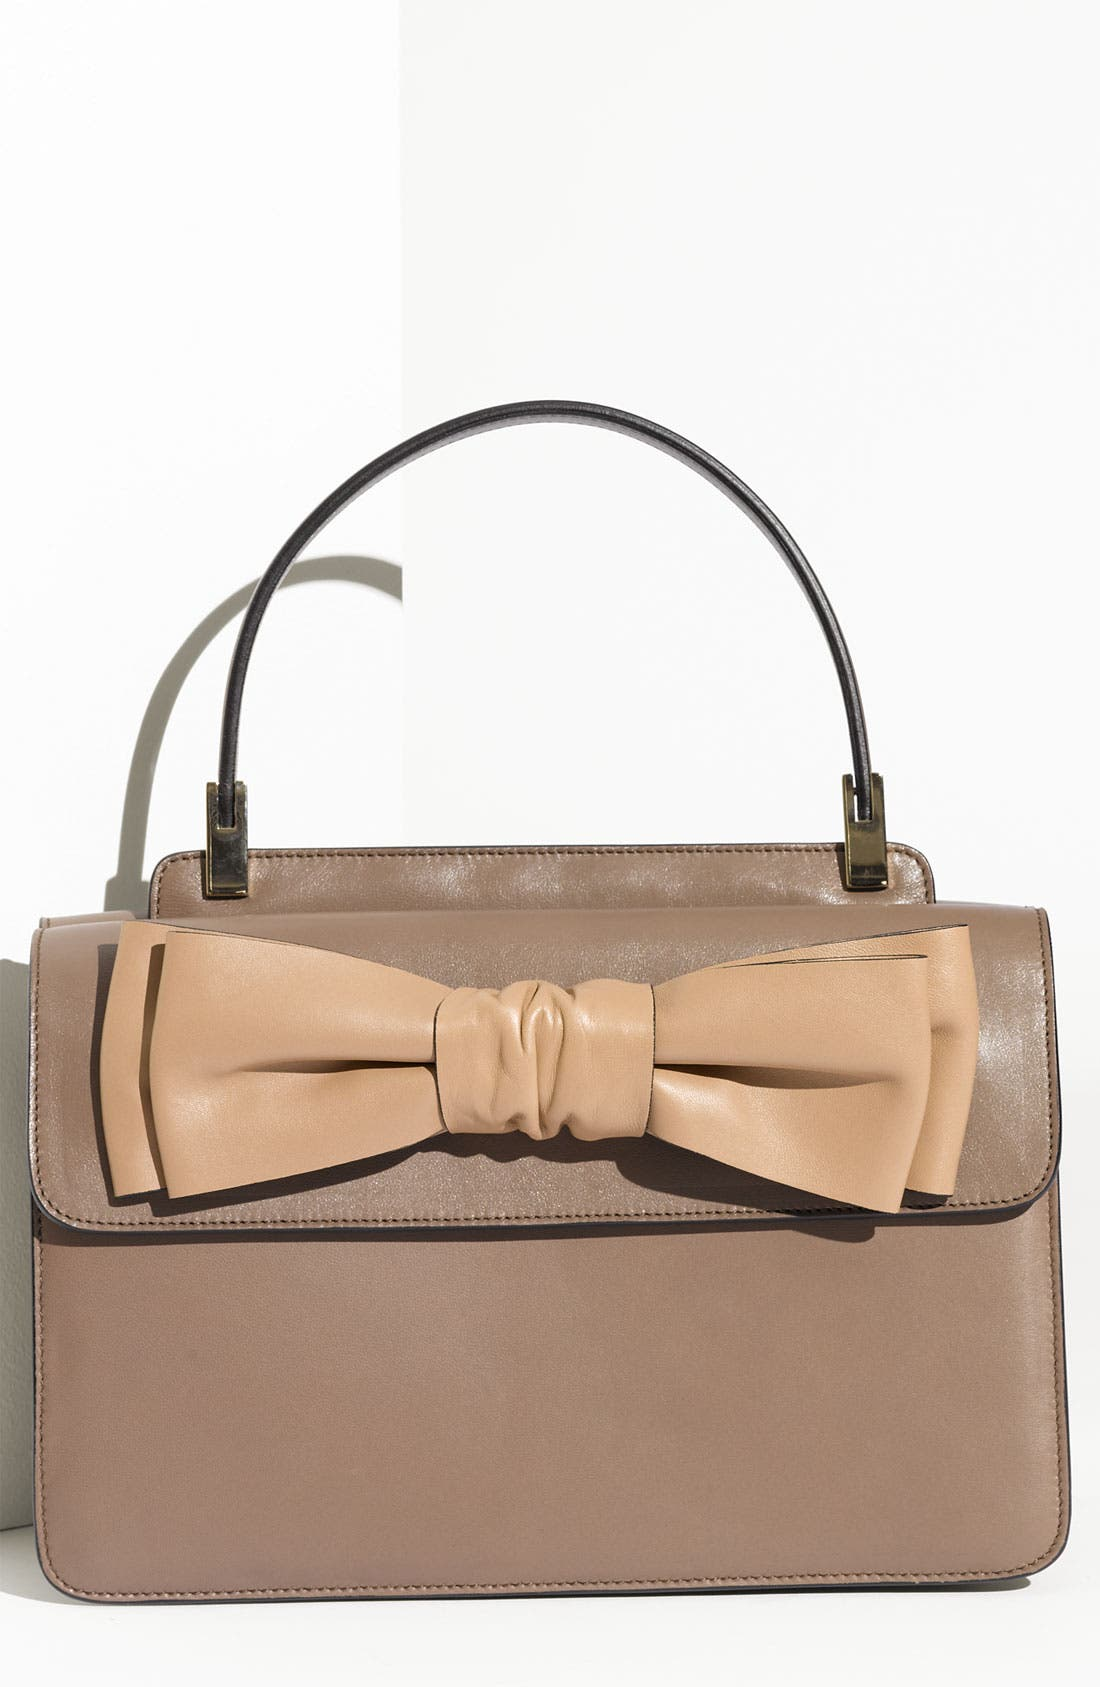 Alternate Image 1 Selected - Valentino 'Aphrodite - Small' Leather Shopper